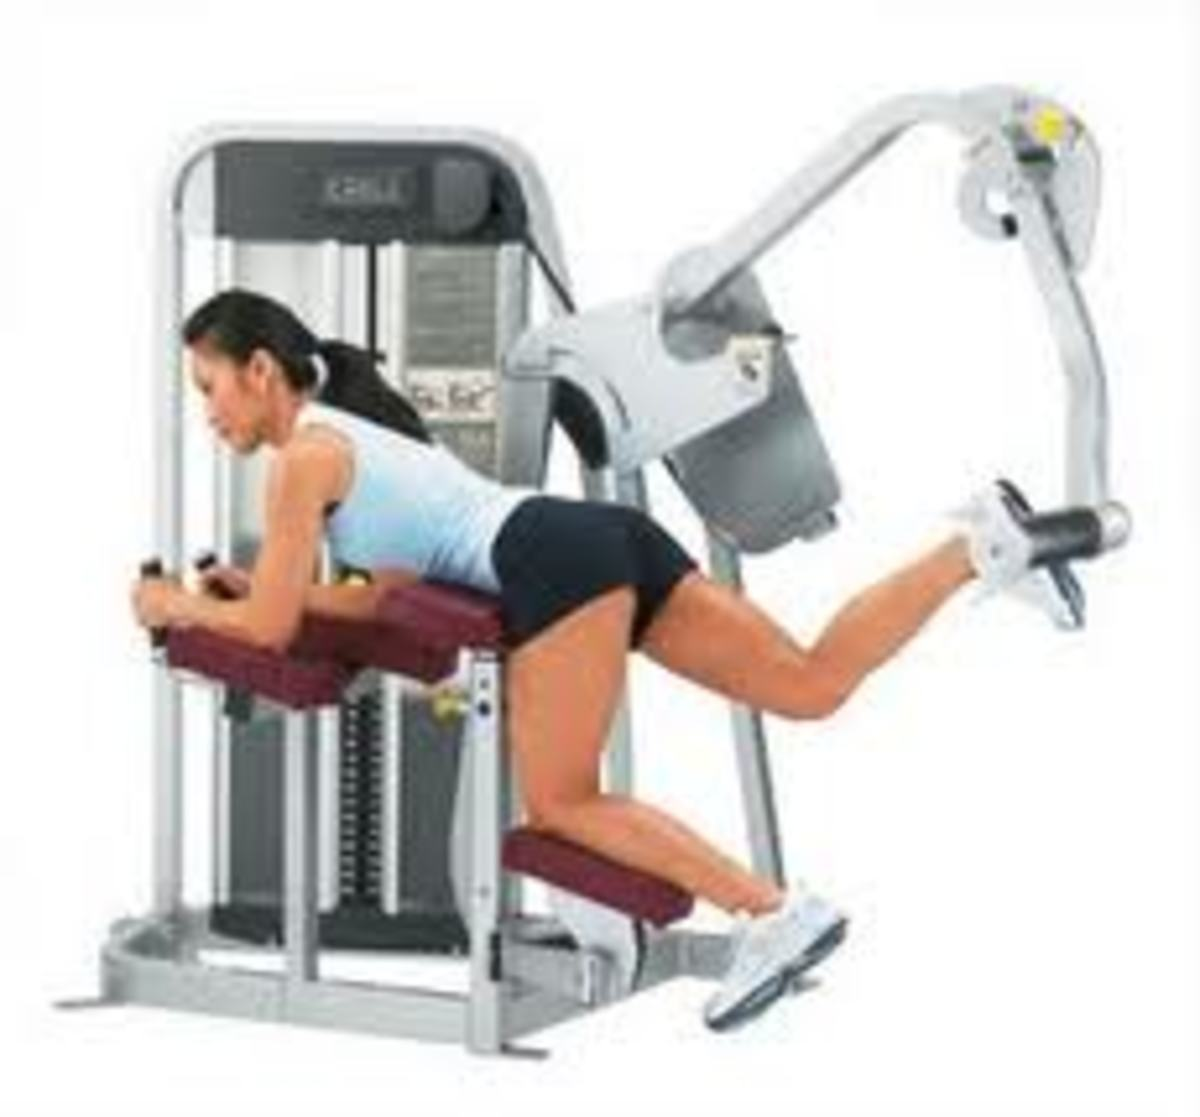 Fitness Machine that Target the Derrière with brunette girl demonstration